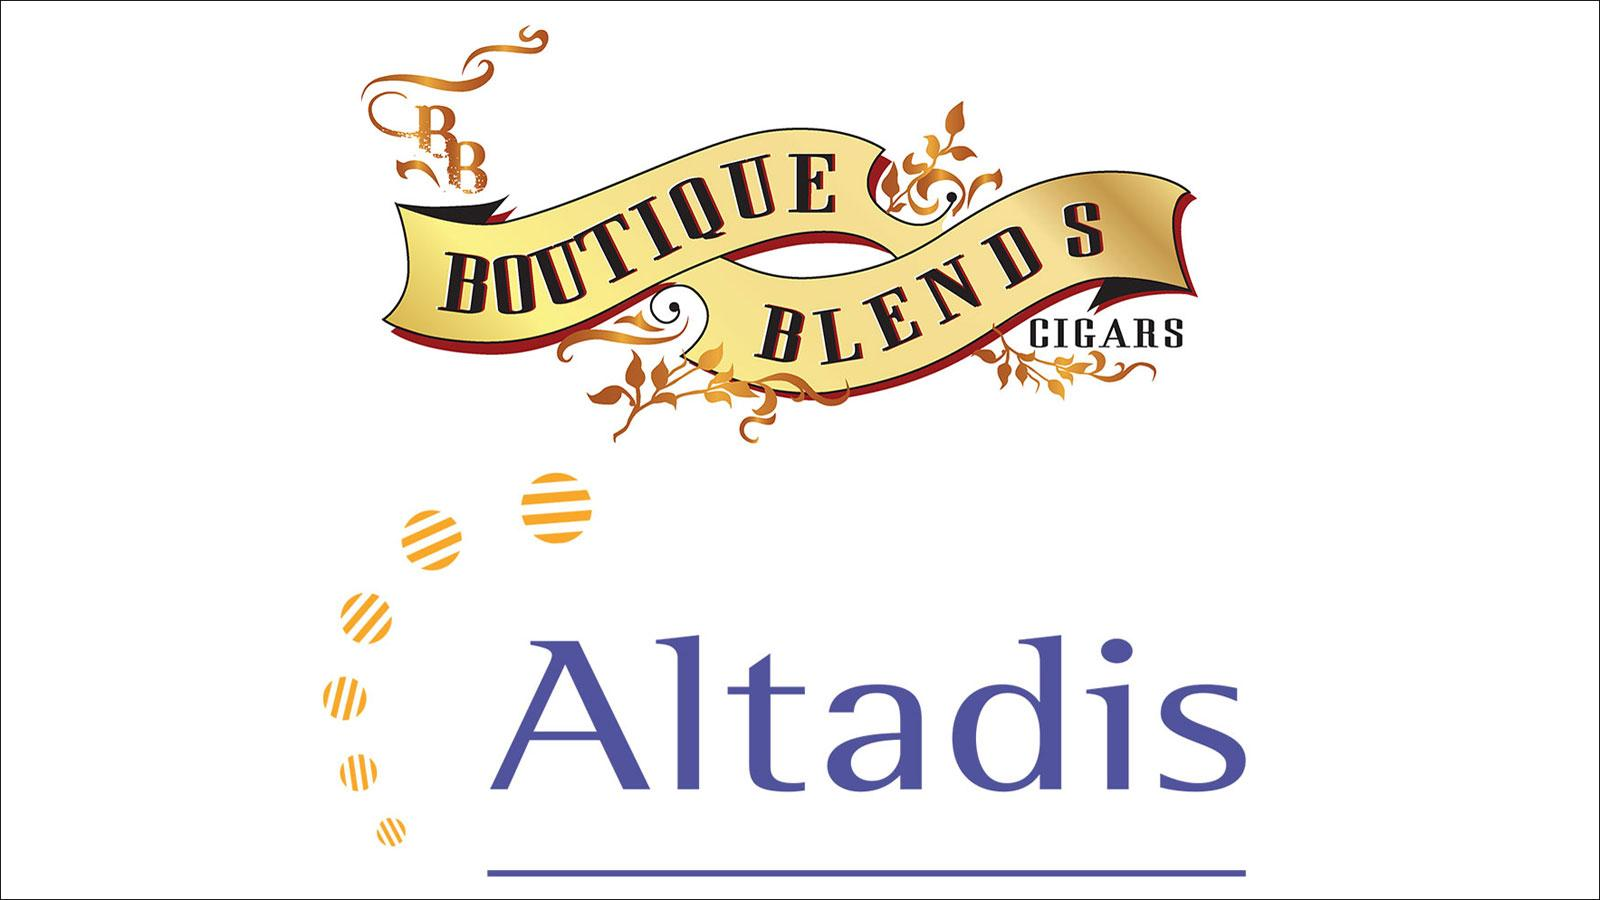 Altadis U.S.A. Strikes Deal With Boutique Blends